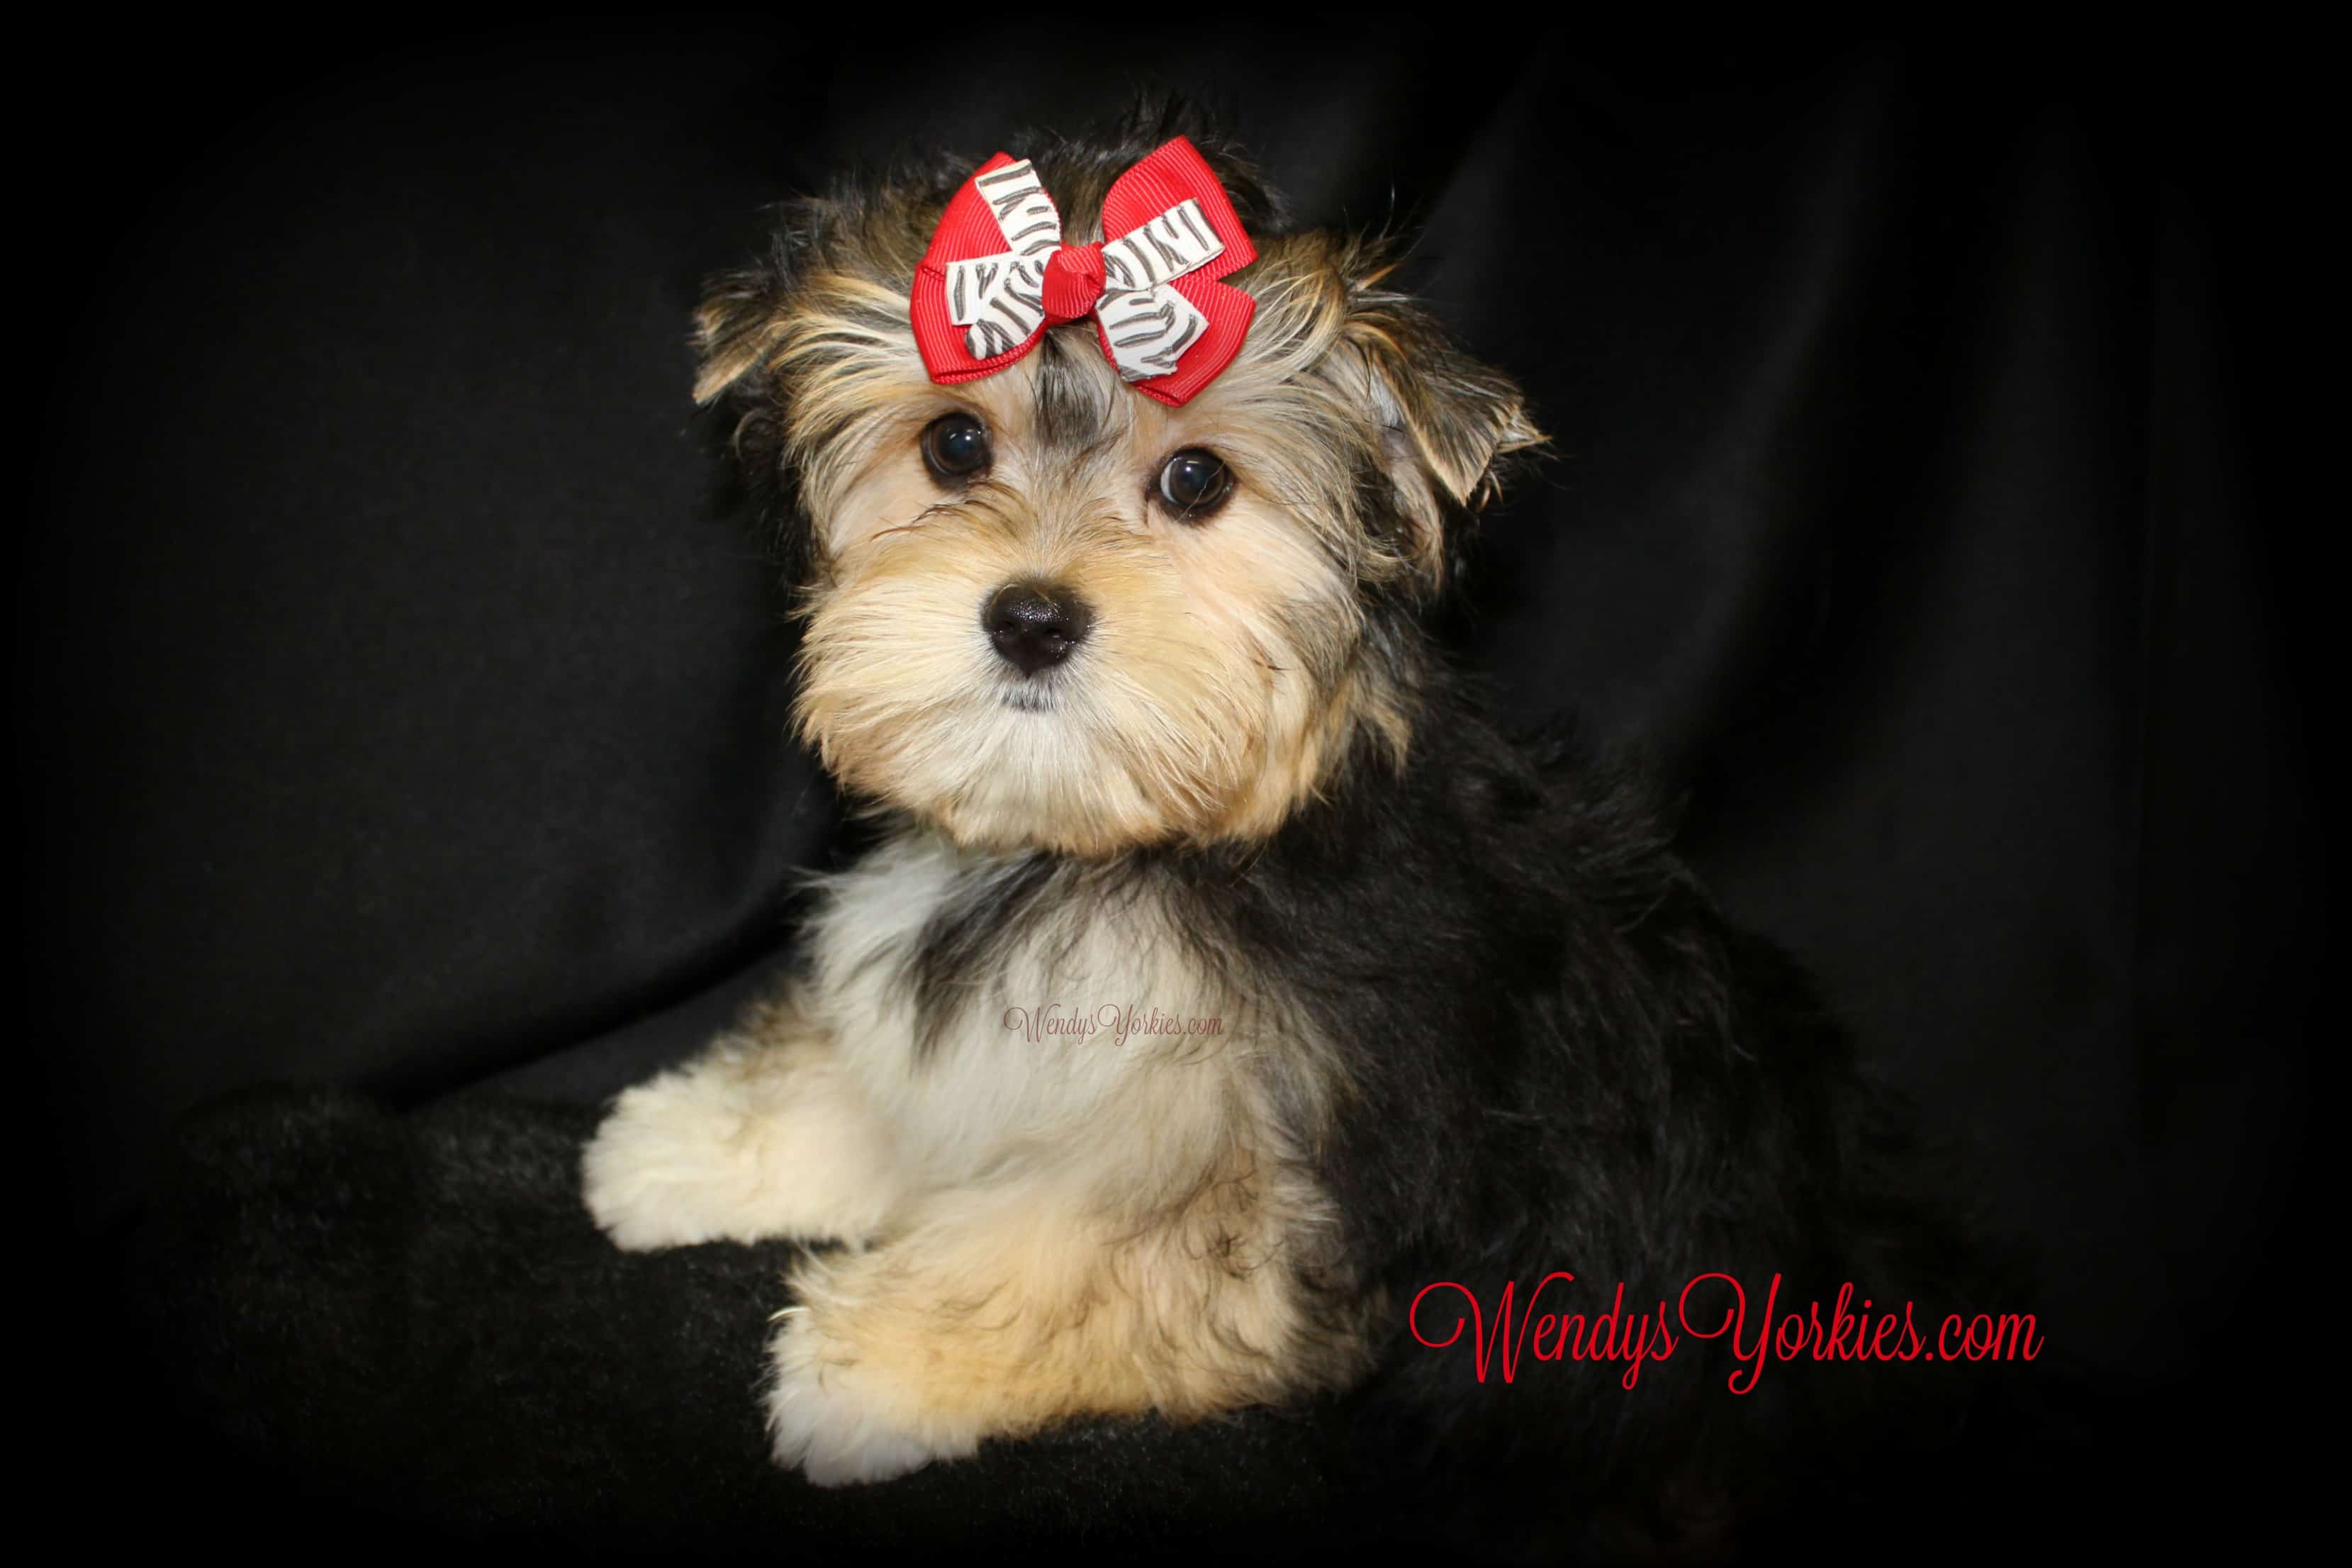 Male Morkie puppy for sale, WendysYorkies.com